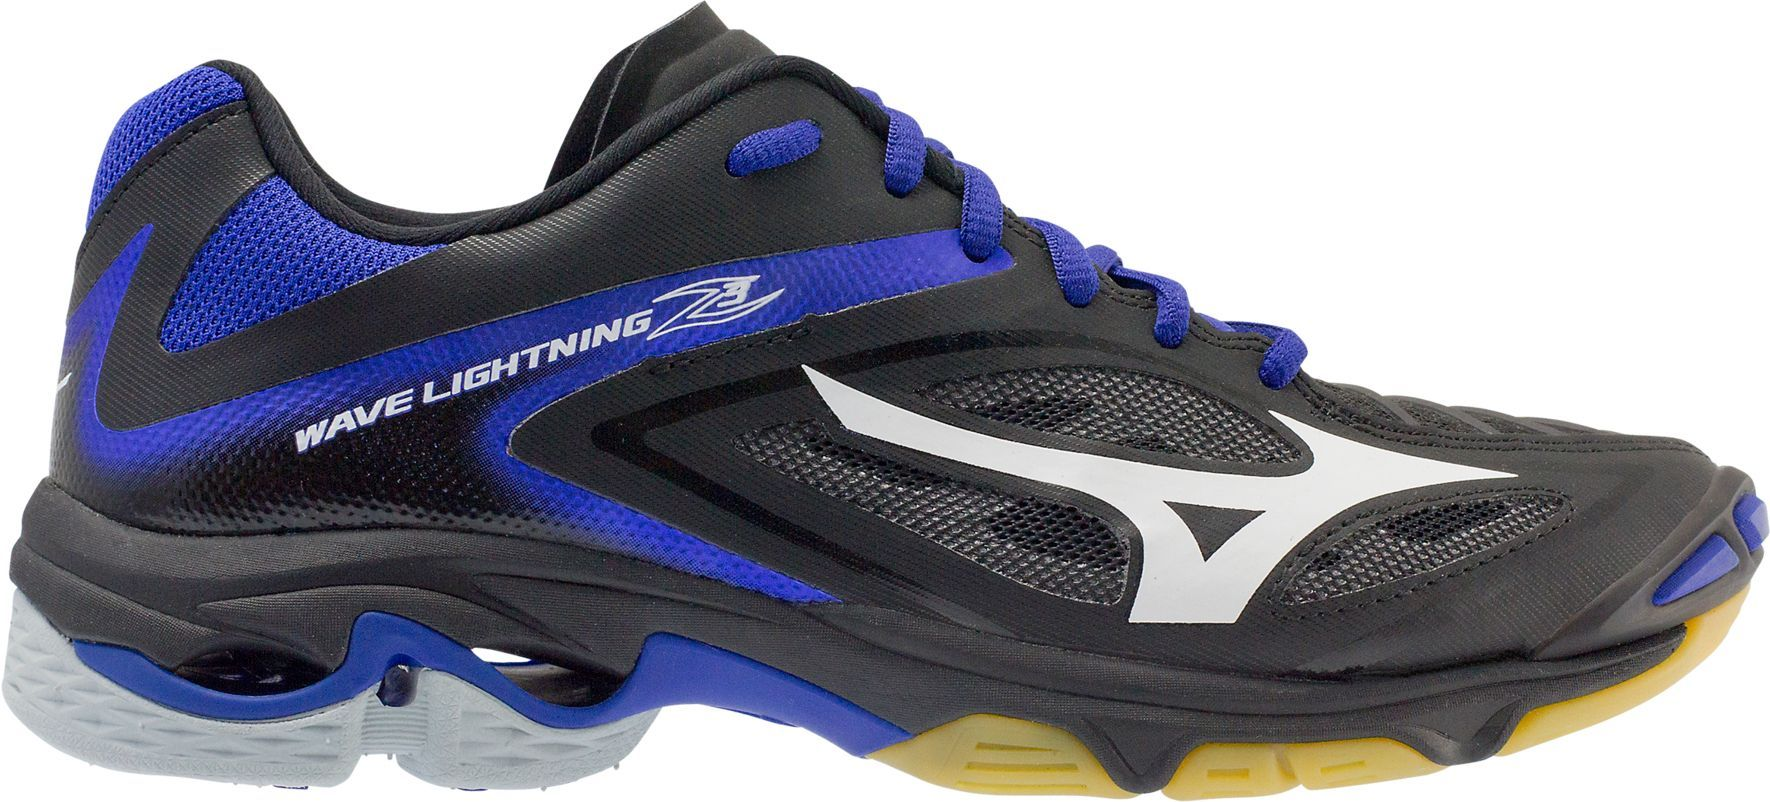 Mizuno Volleyball Shoes Best Shoes For Volleyball Lovers Blogdeb Com In 2020 Volleyball Shoes Mizuno Volleyball Mizuno Shoes